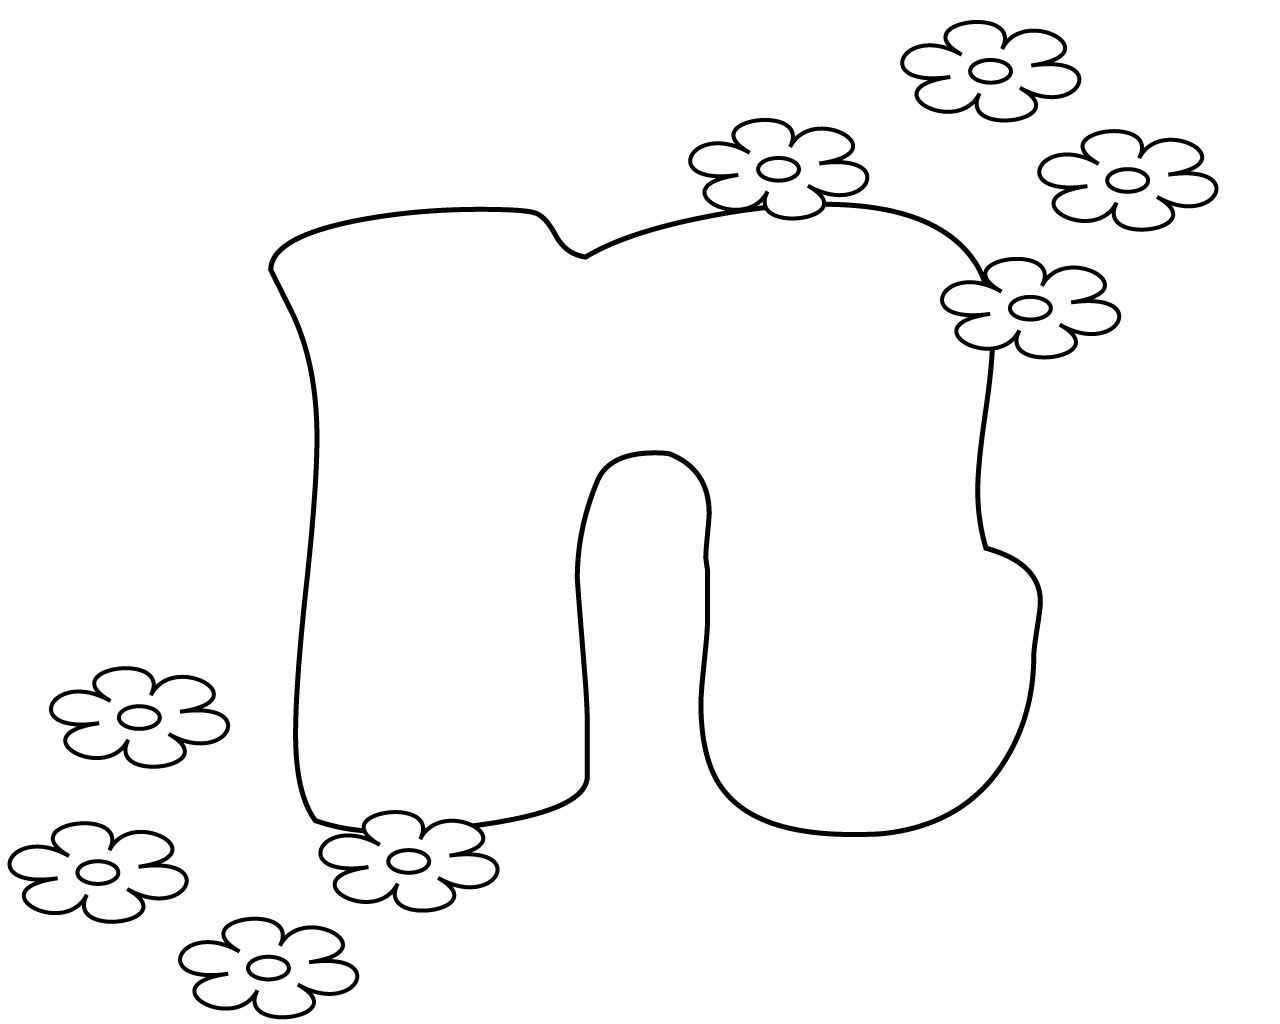 Printable Letter N Coloring Page For Your Loved Ones With Images